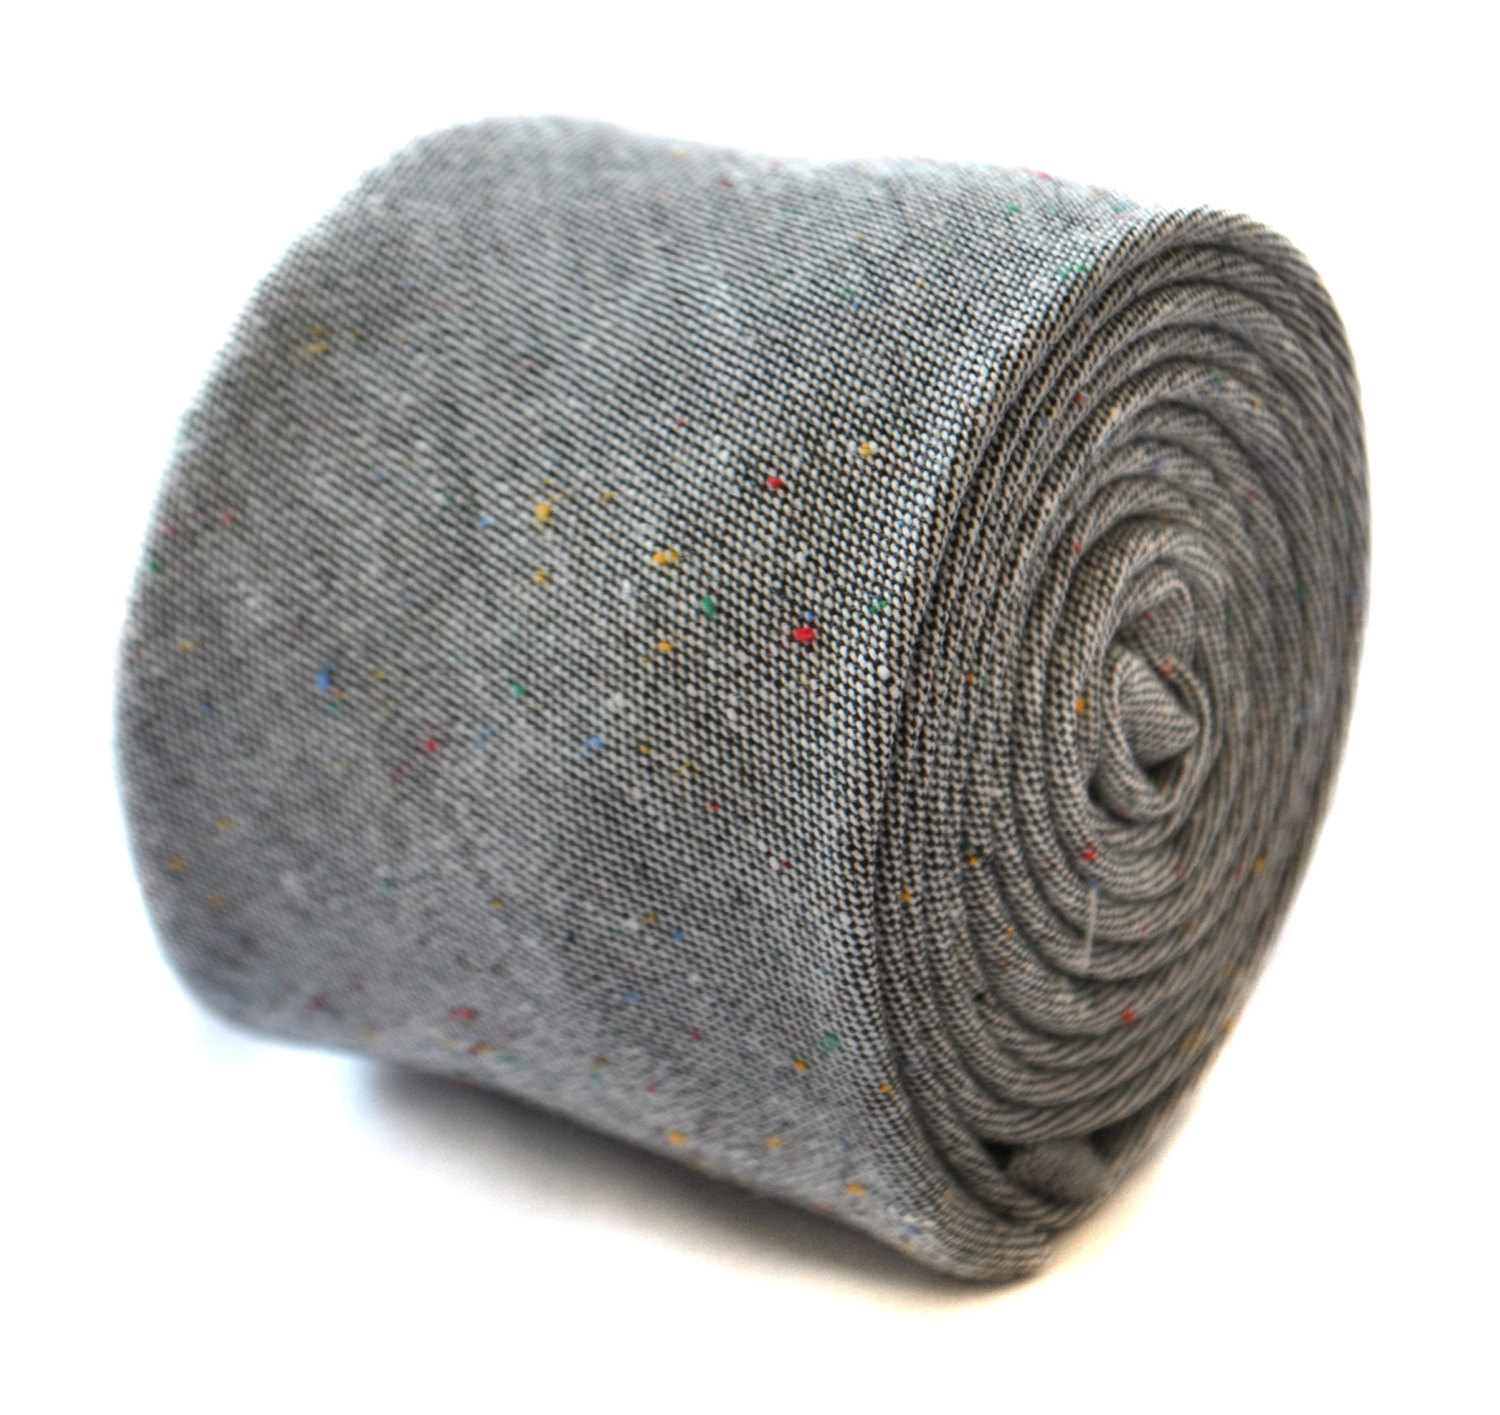 skinny pale speckled grey linen tie by Frederick Thomas FT1901